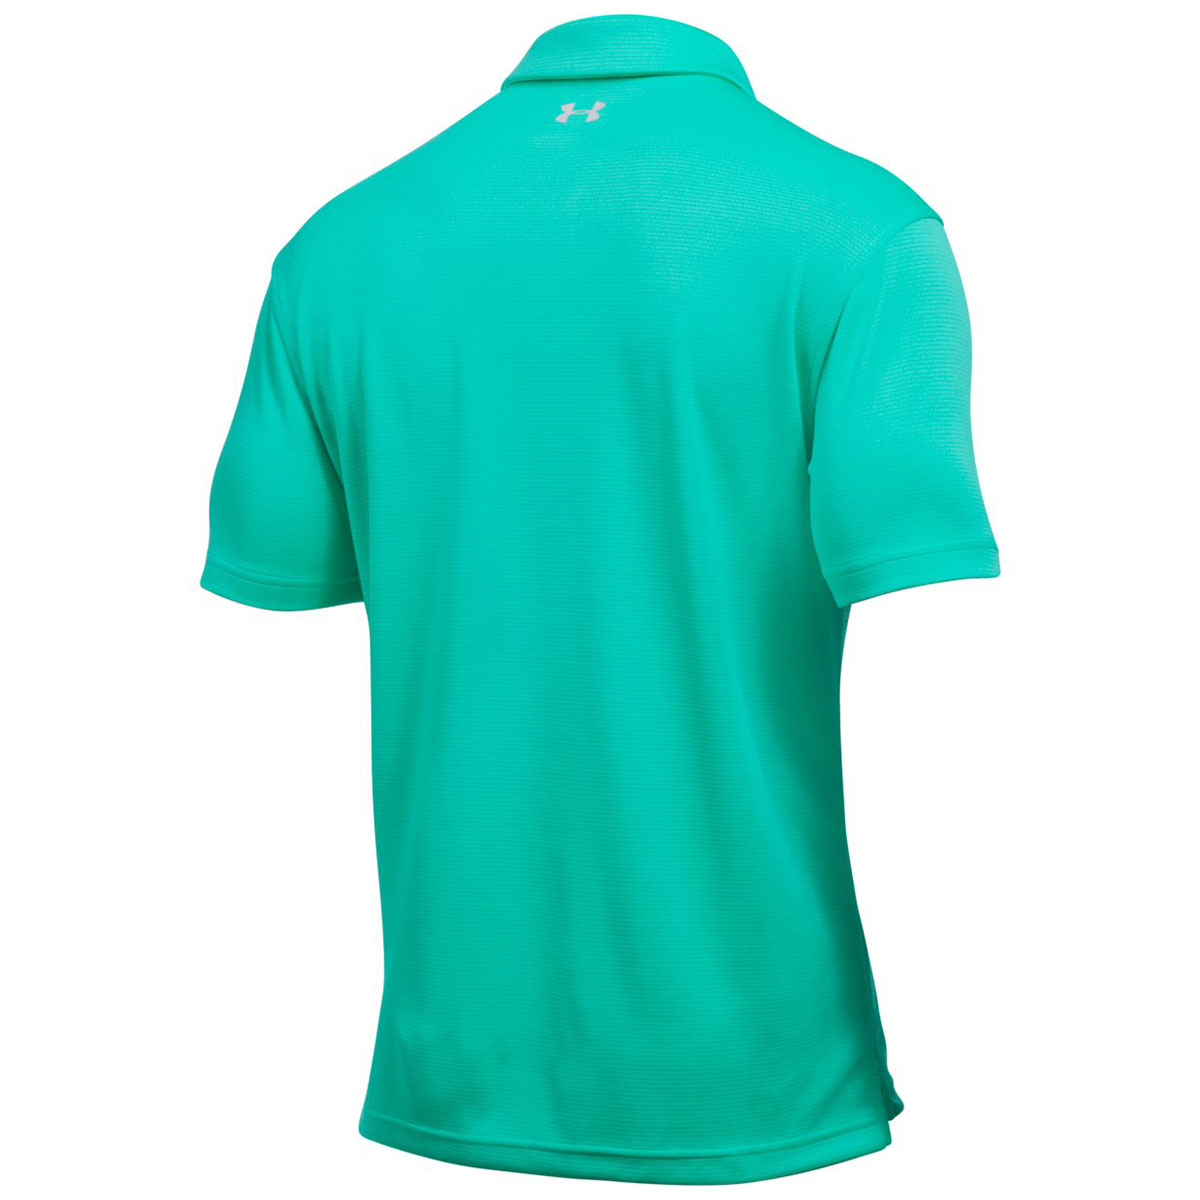 Under-Armour-Mens-Golf-Tech-Wicking-Textured-Soft-Light-Polo-Shirt thumbnail 3